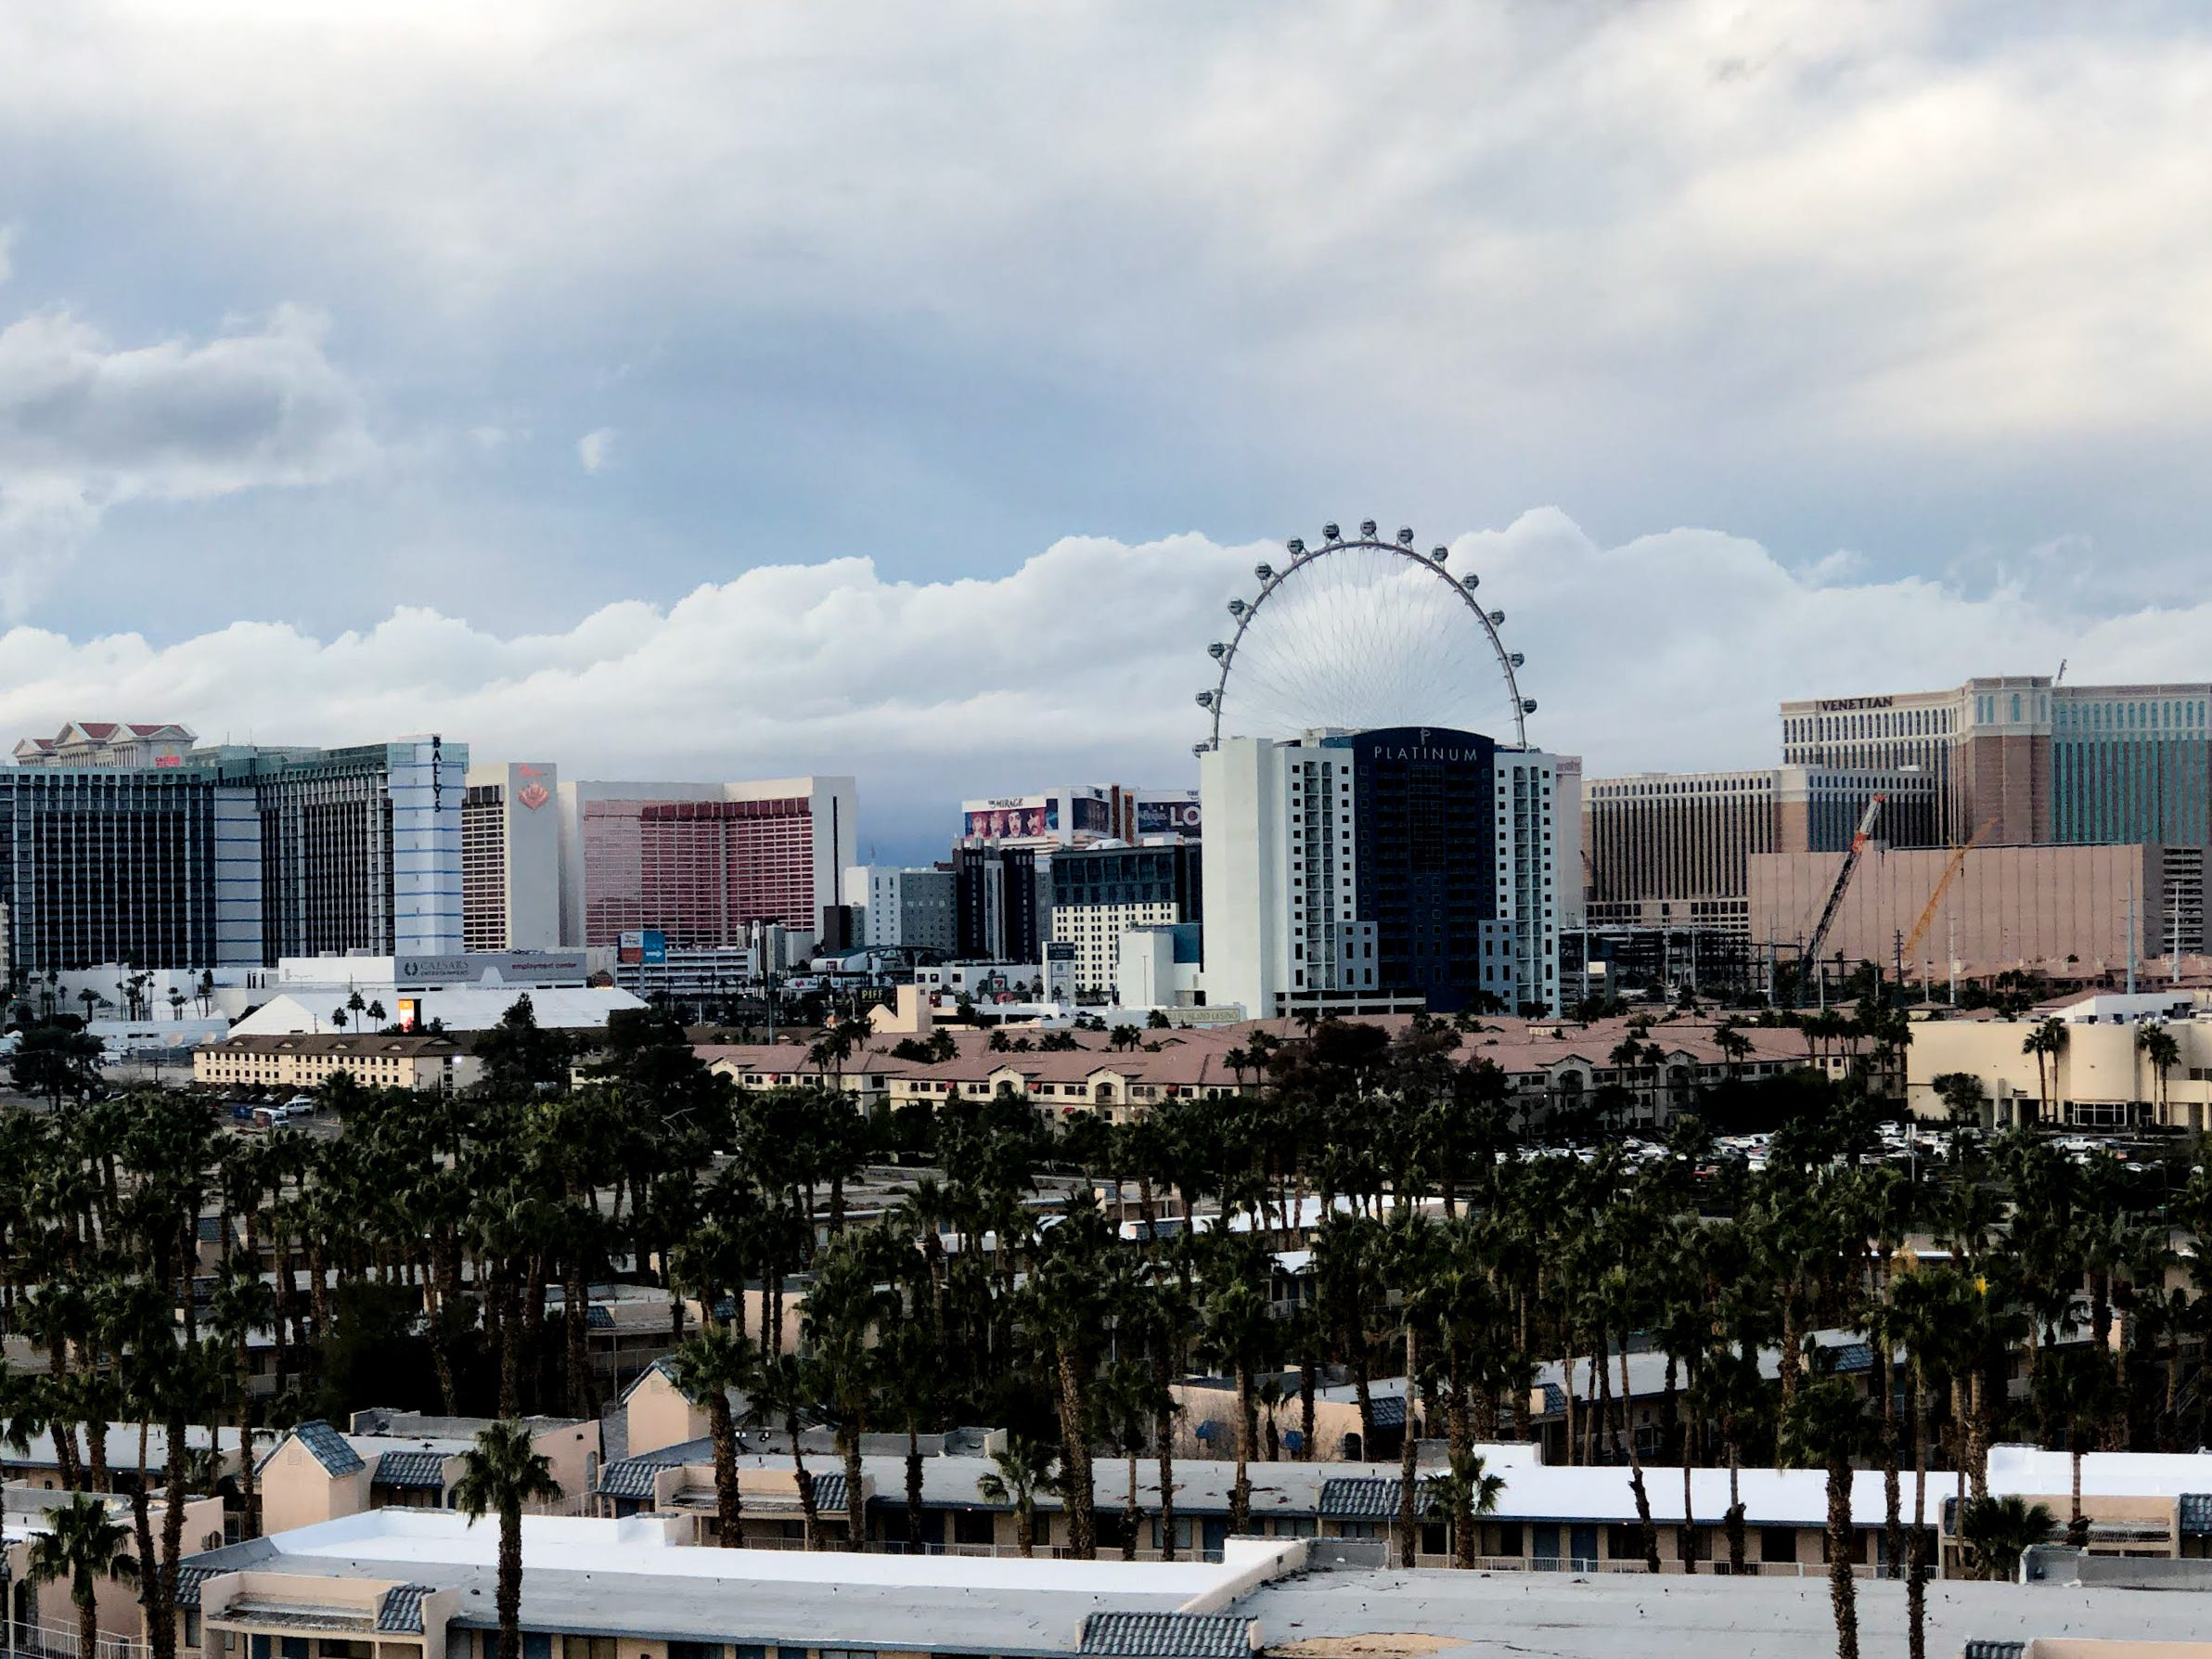 A panorama shot of the Las Vegas Strip taken with an iPhone XS Max from the roof of the Hard Rock Hotel parking garage.